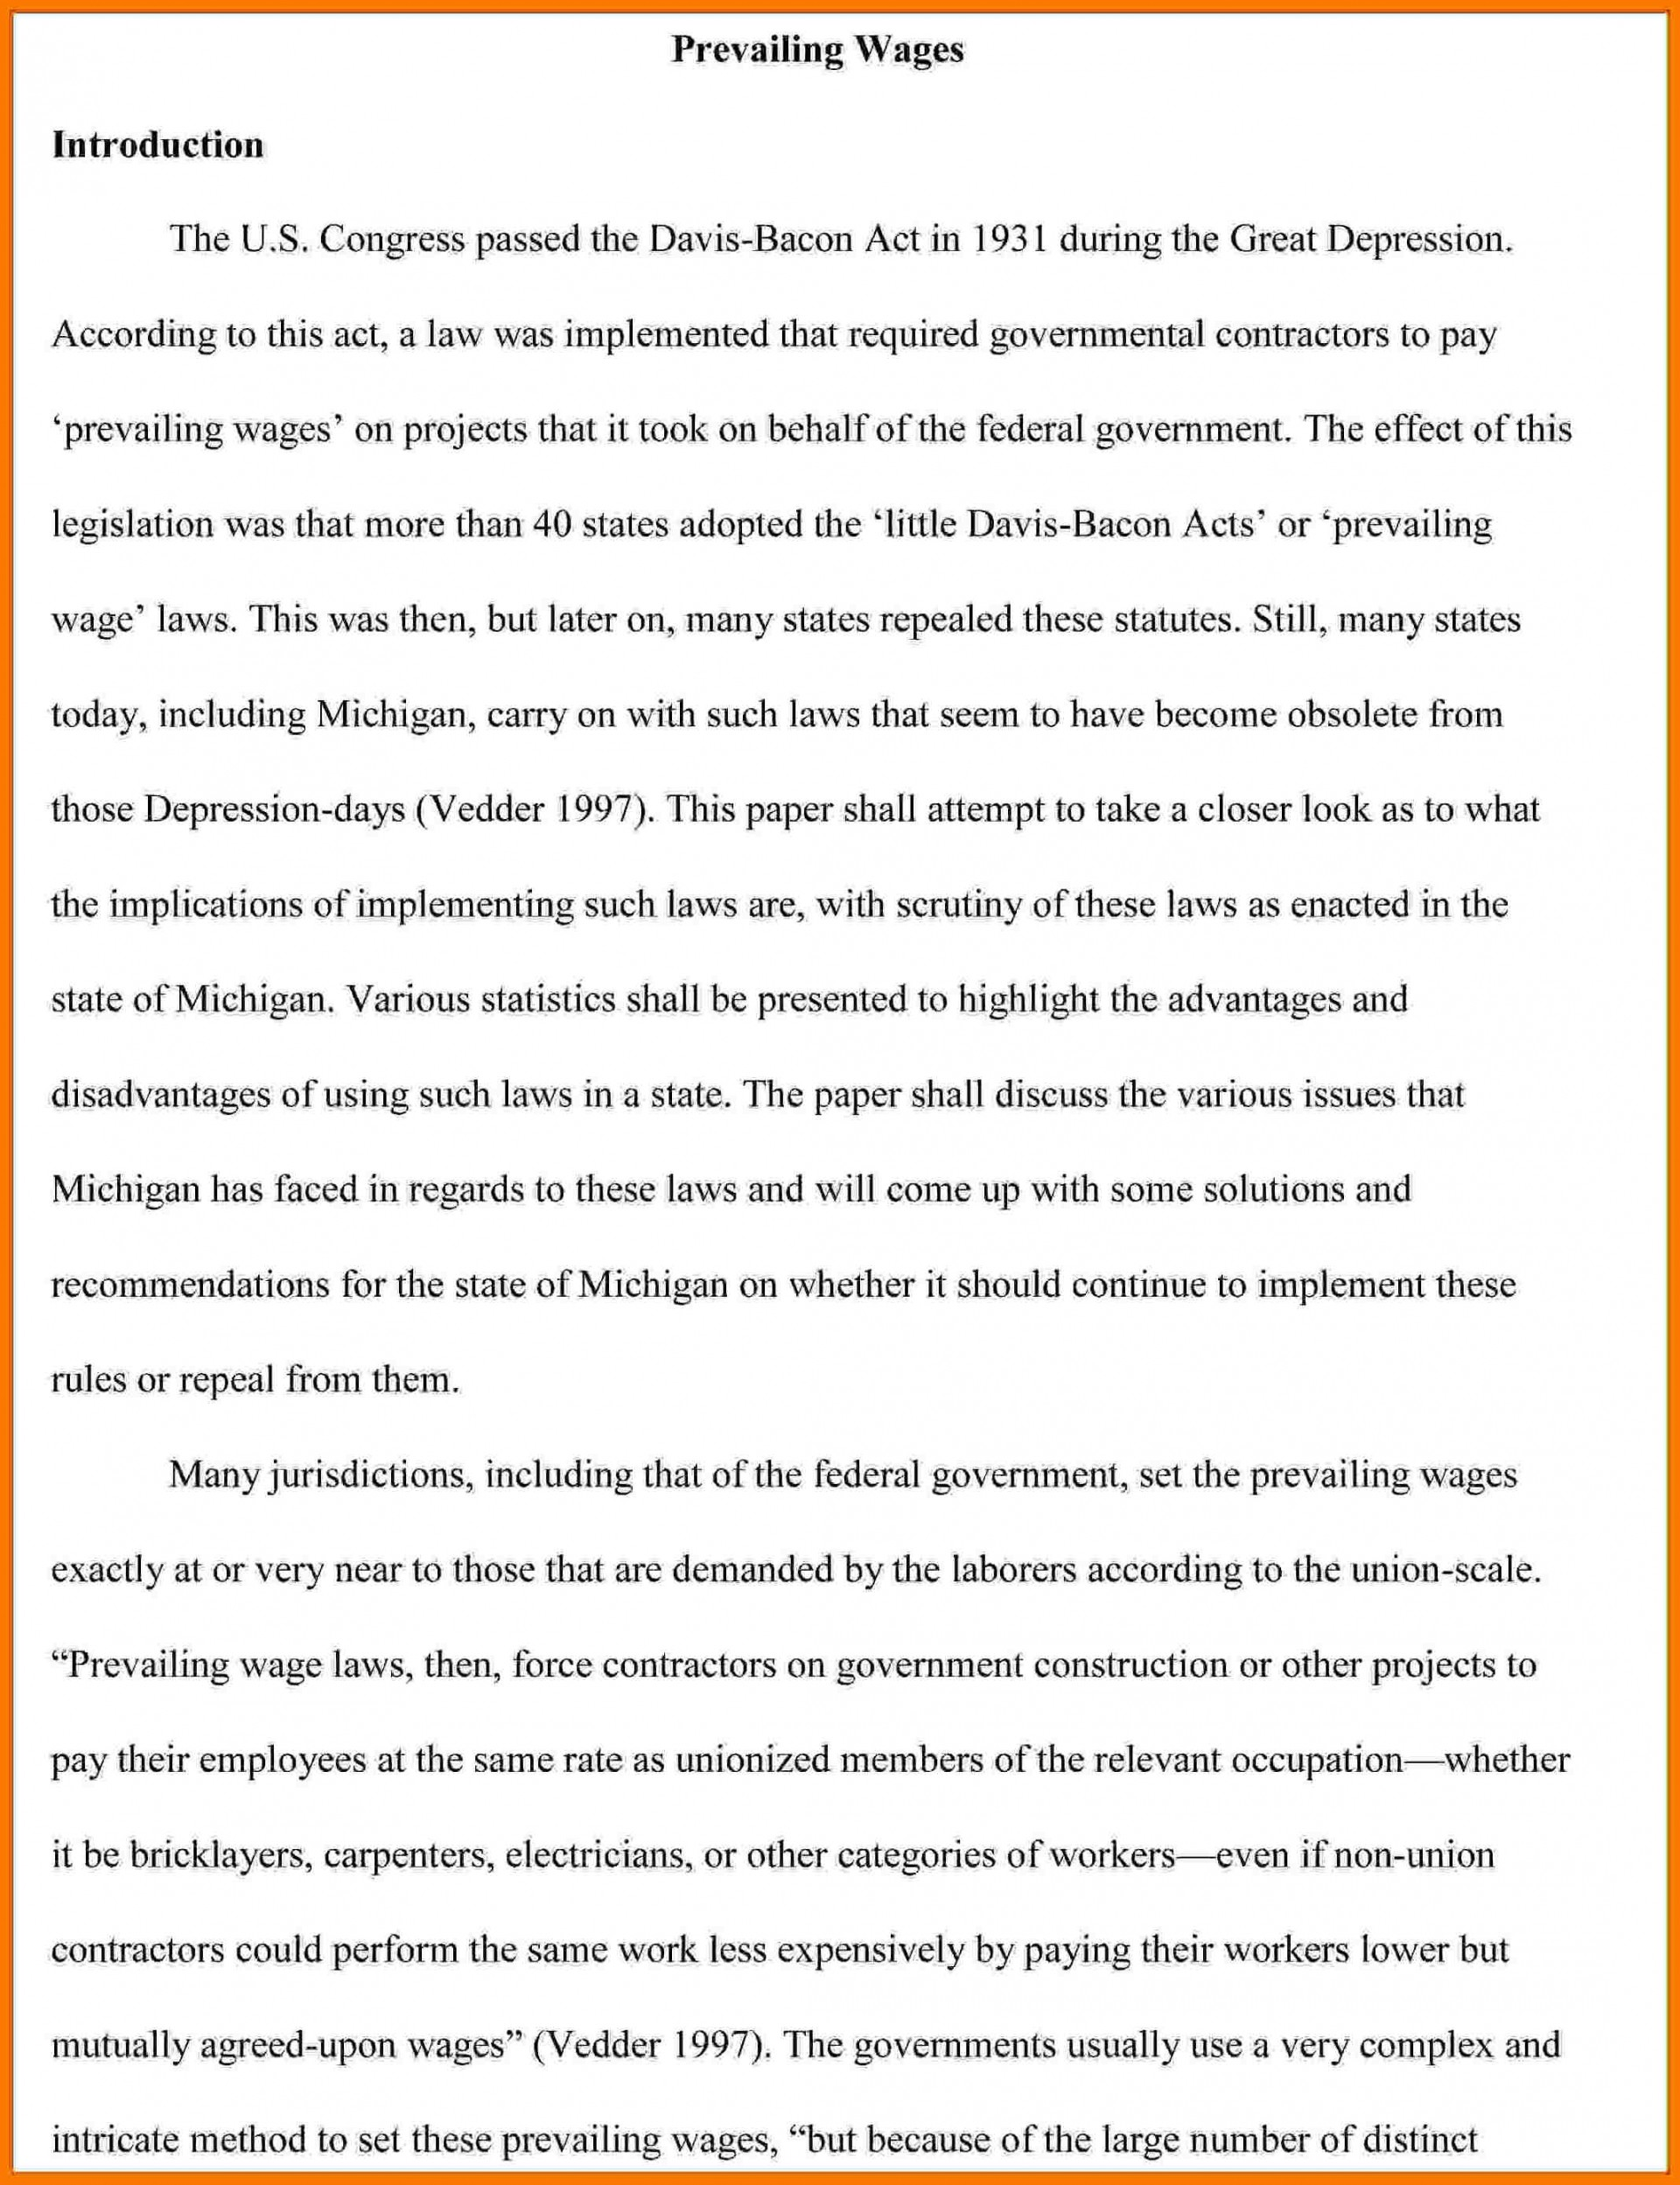 003 Collection Of Solutions Introduction Apa Paper Great Research To Frightening Example A Pdf 1920